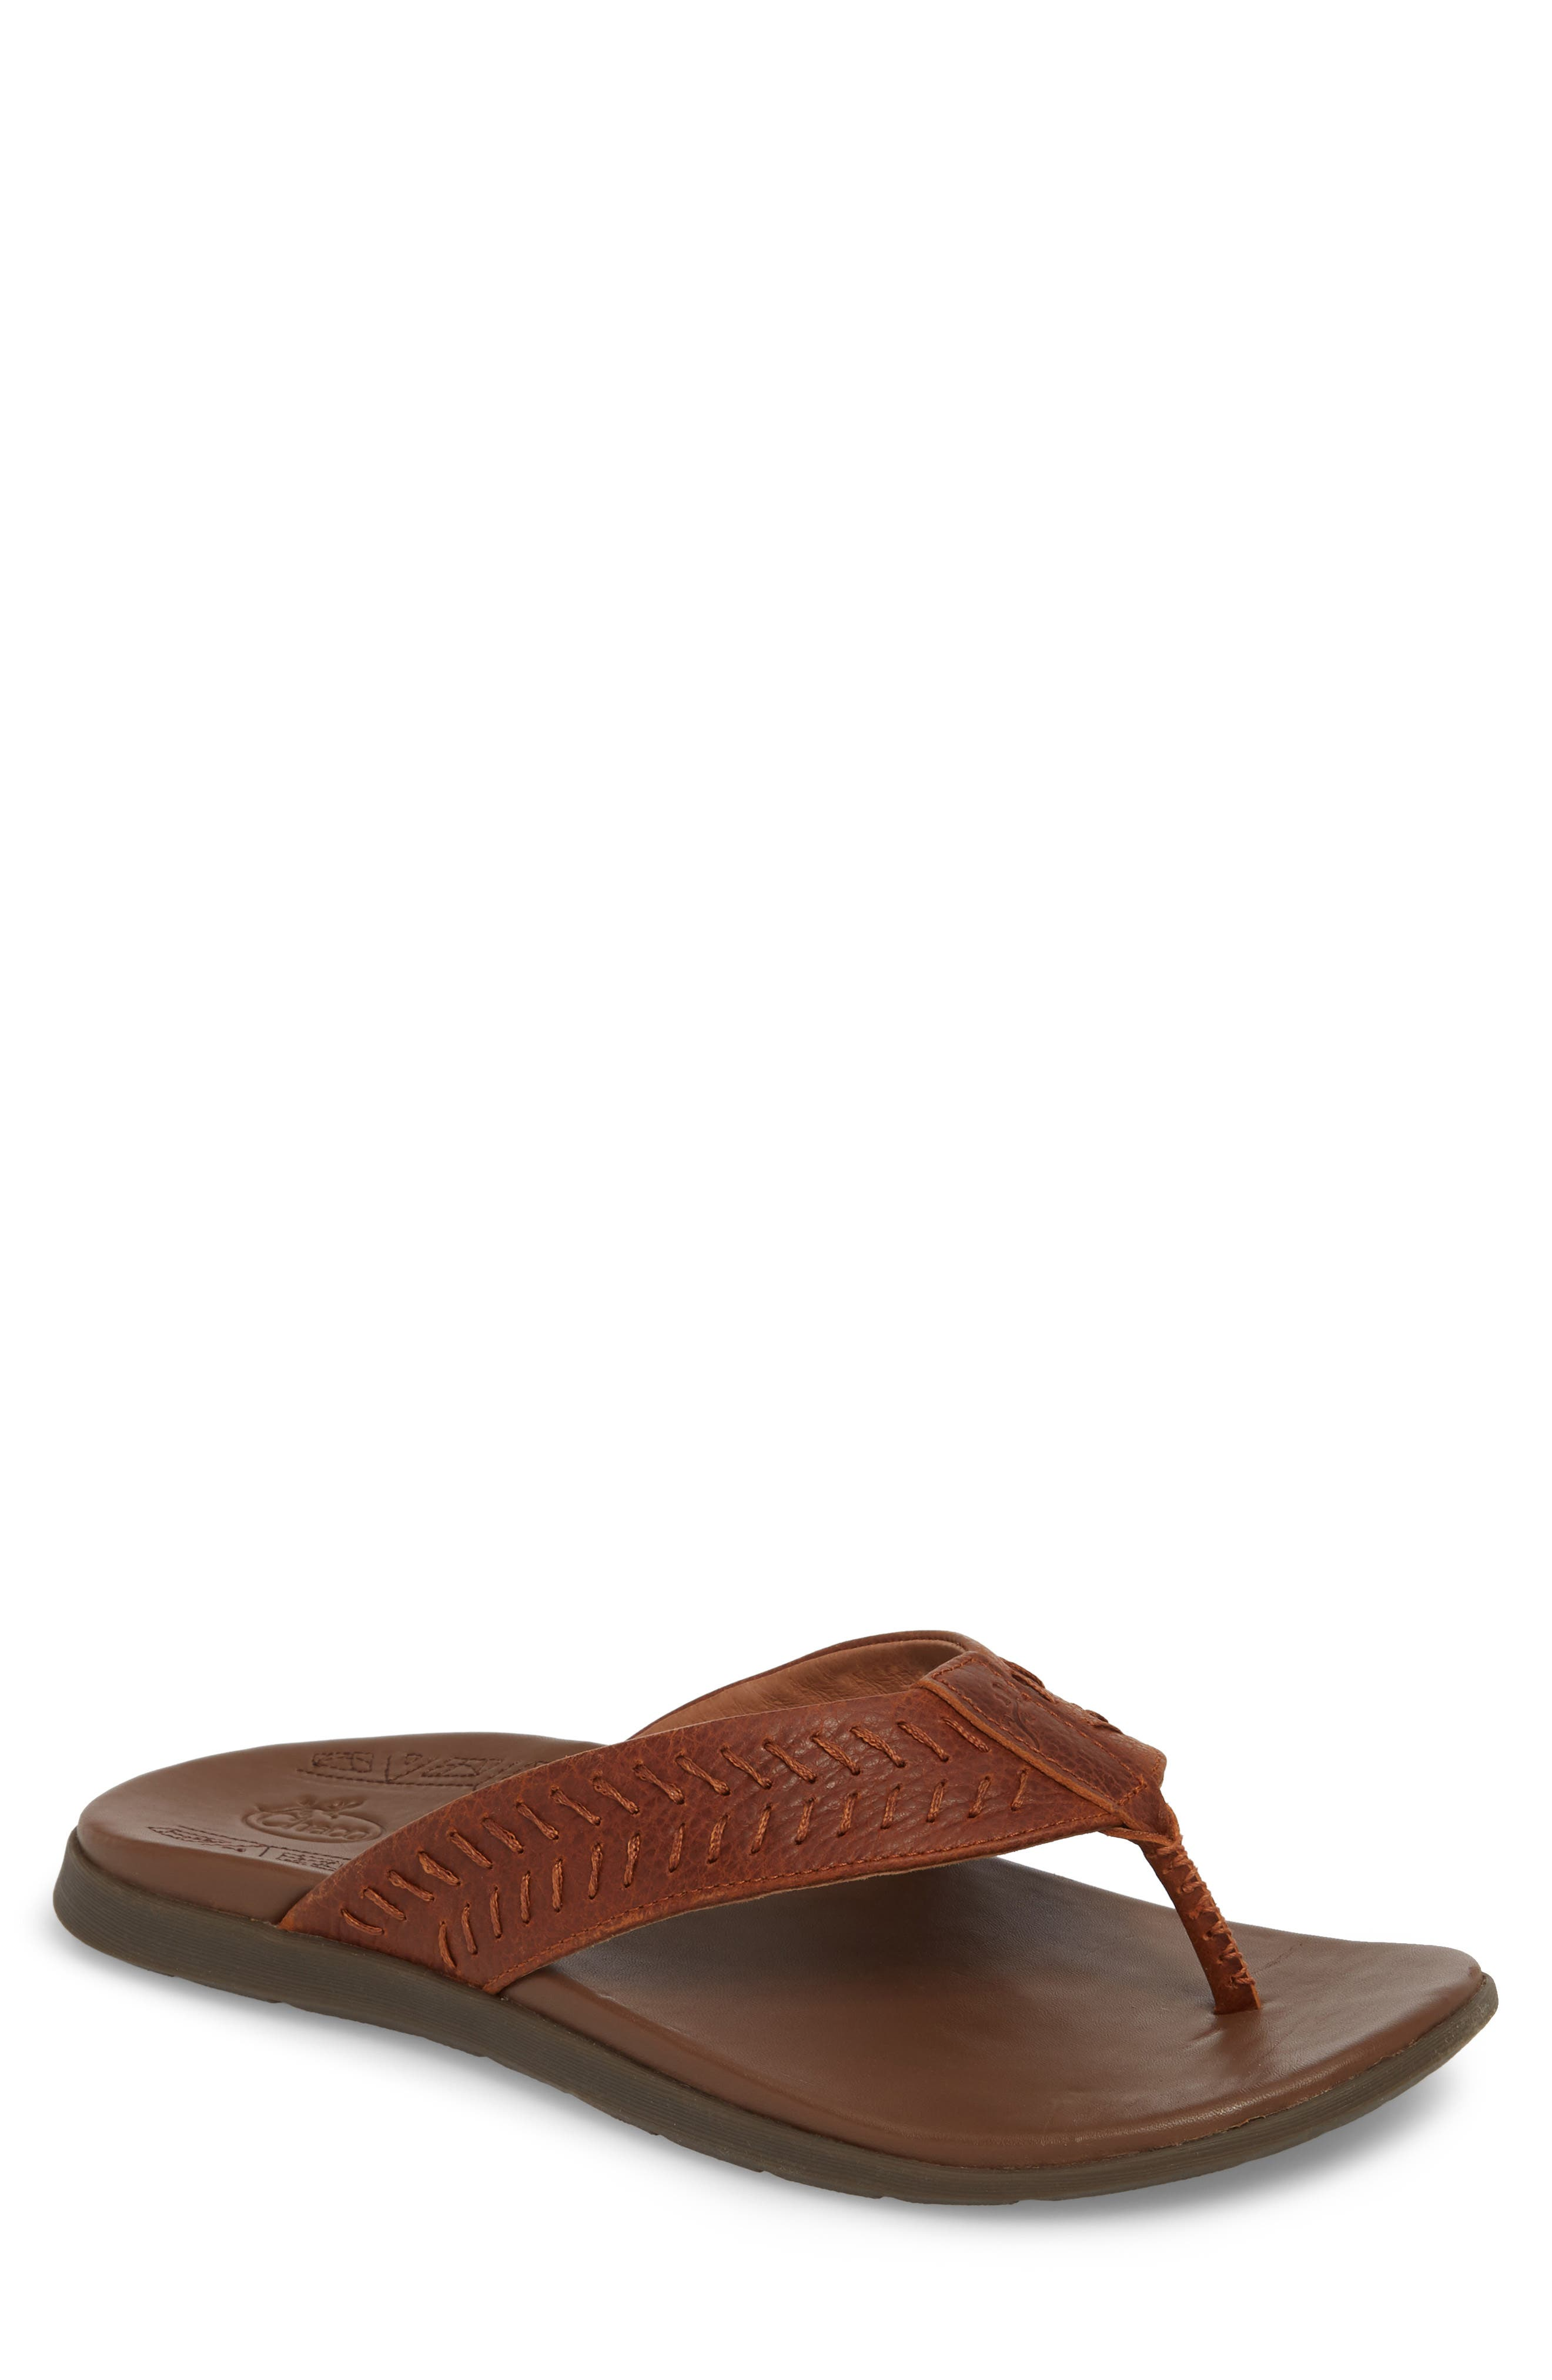 Alternate Image 1 Selected - Chaco Jackson Flip Flop (Men)